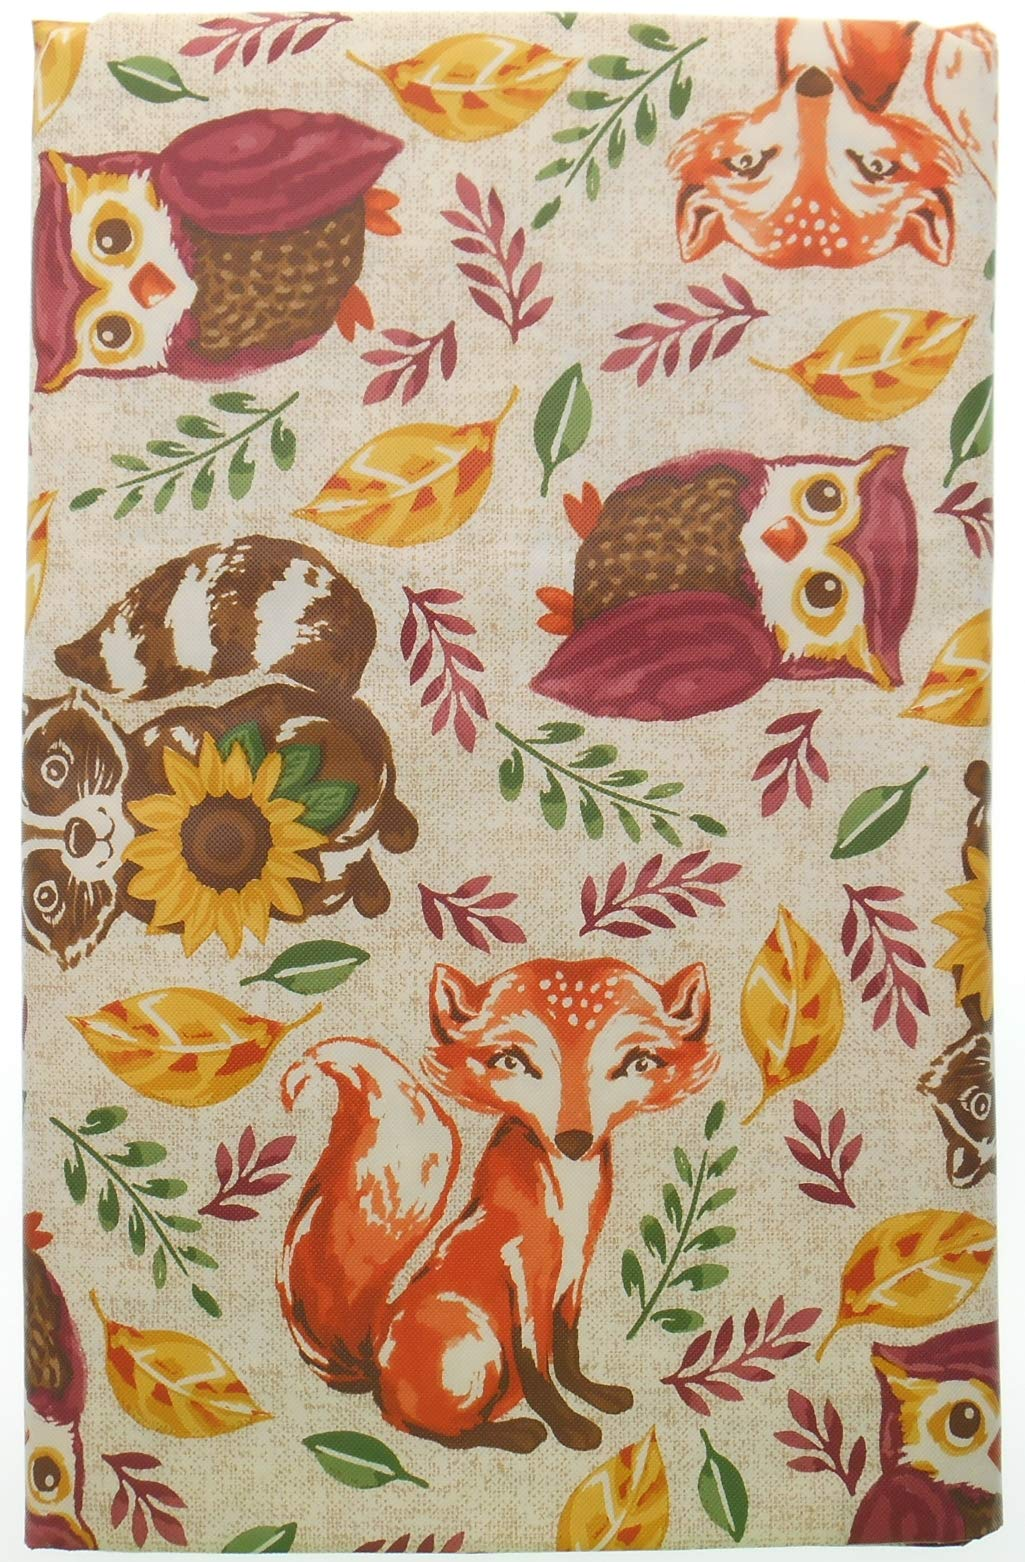 Vinyl Tablecloth Woodland Animals with Flannel Backing. Forest Animals on Beige Background (52'' x 52'' Square)